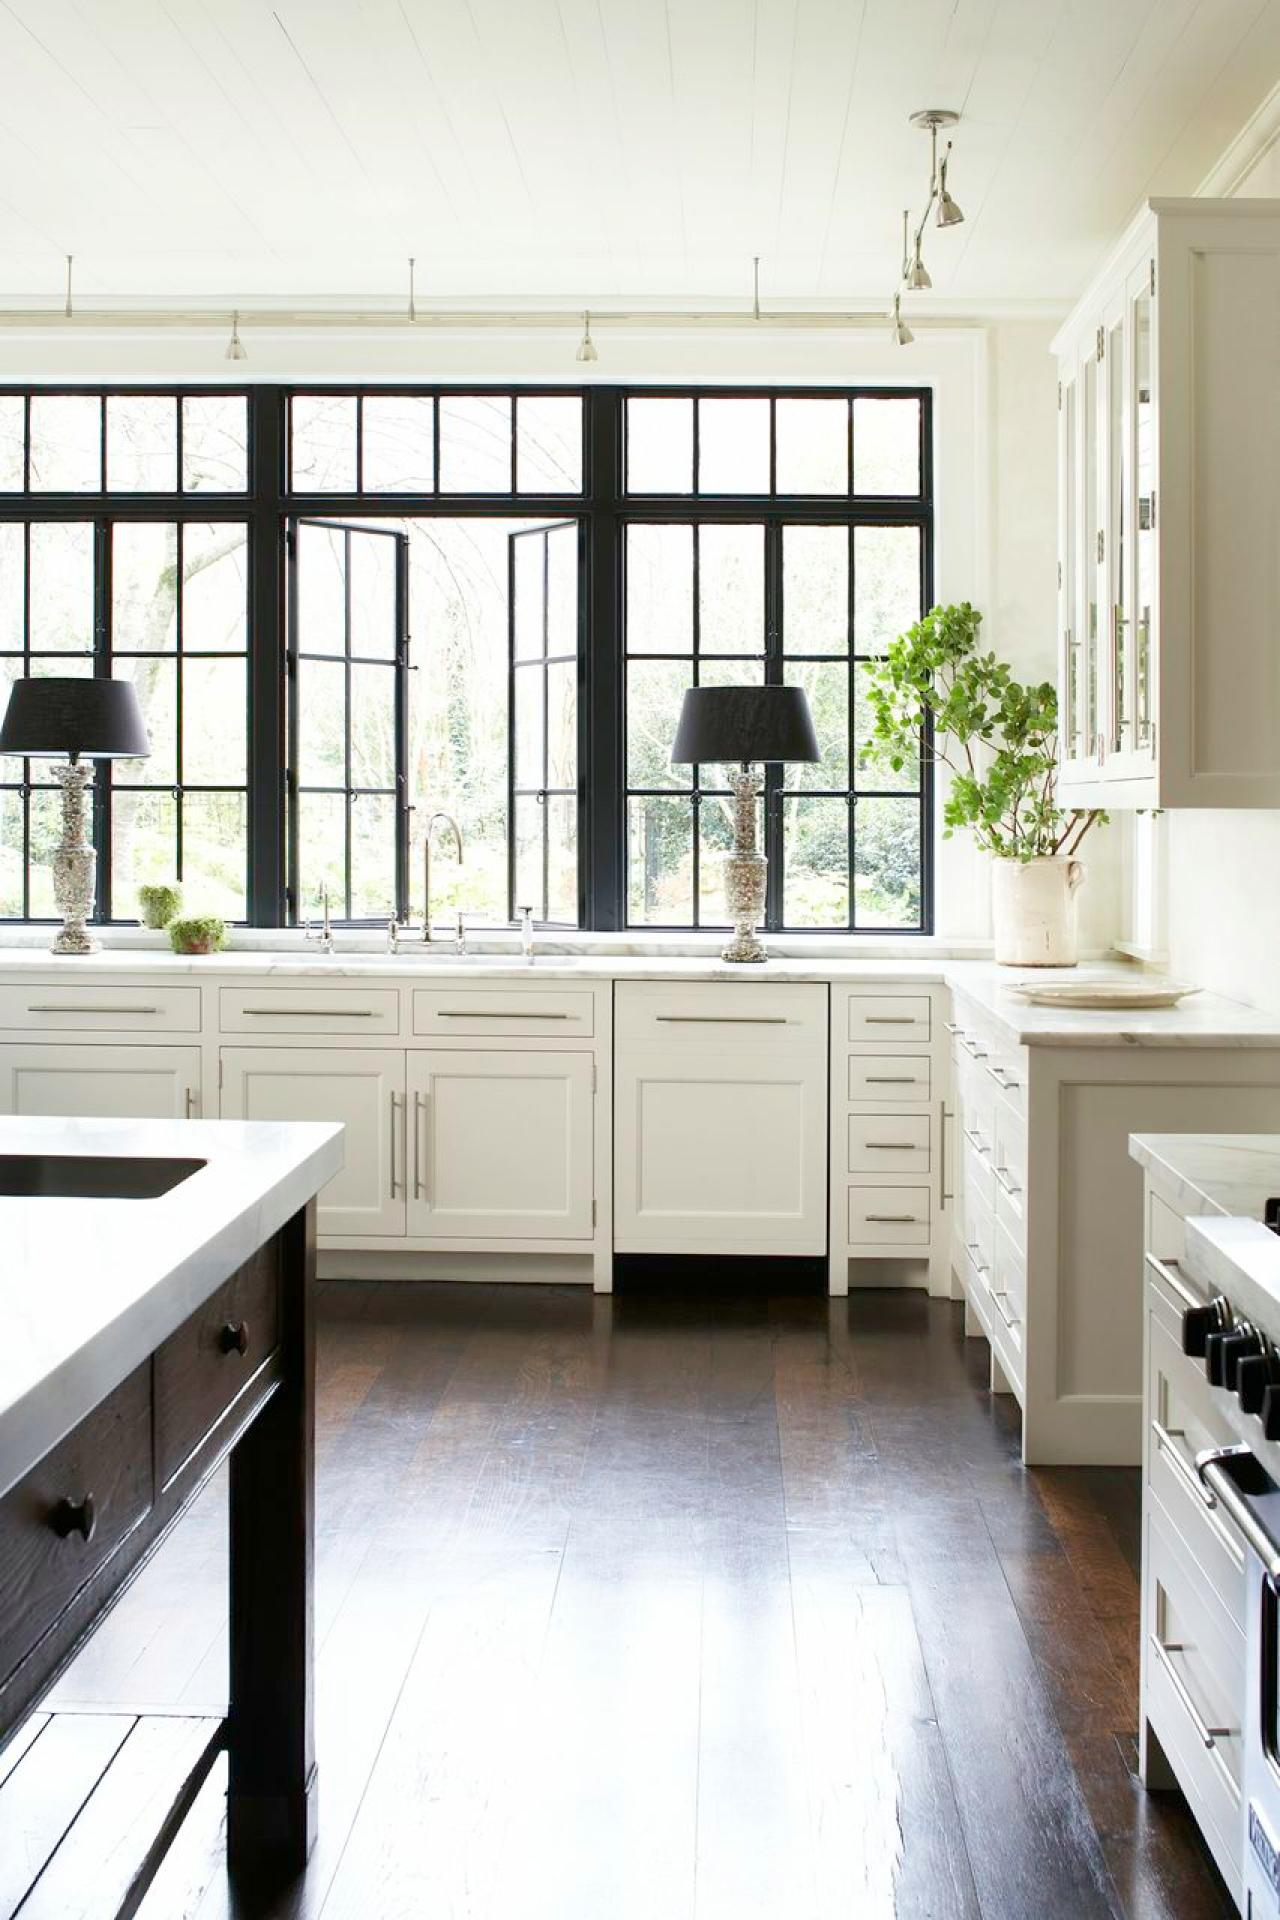 Carter kay atlanta kitchen windows.jpg.rend.hgtvcom.1280.1920